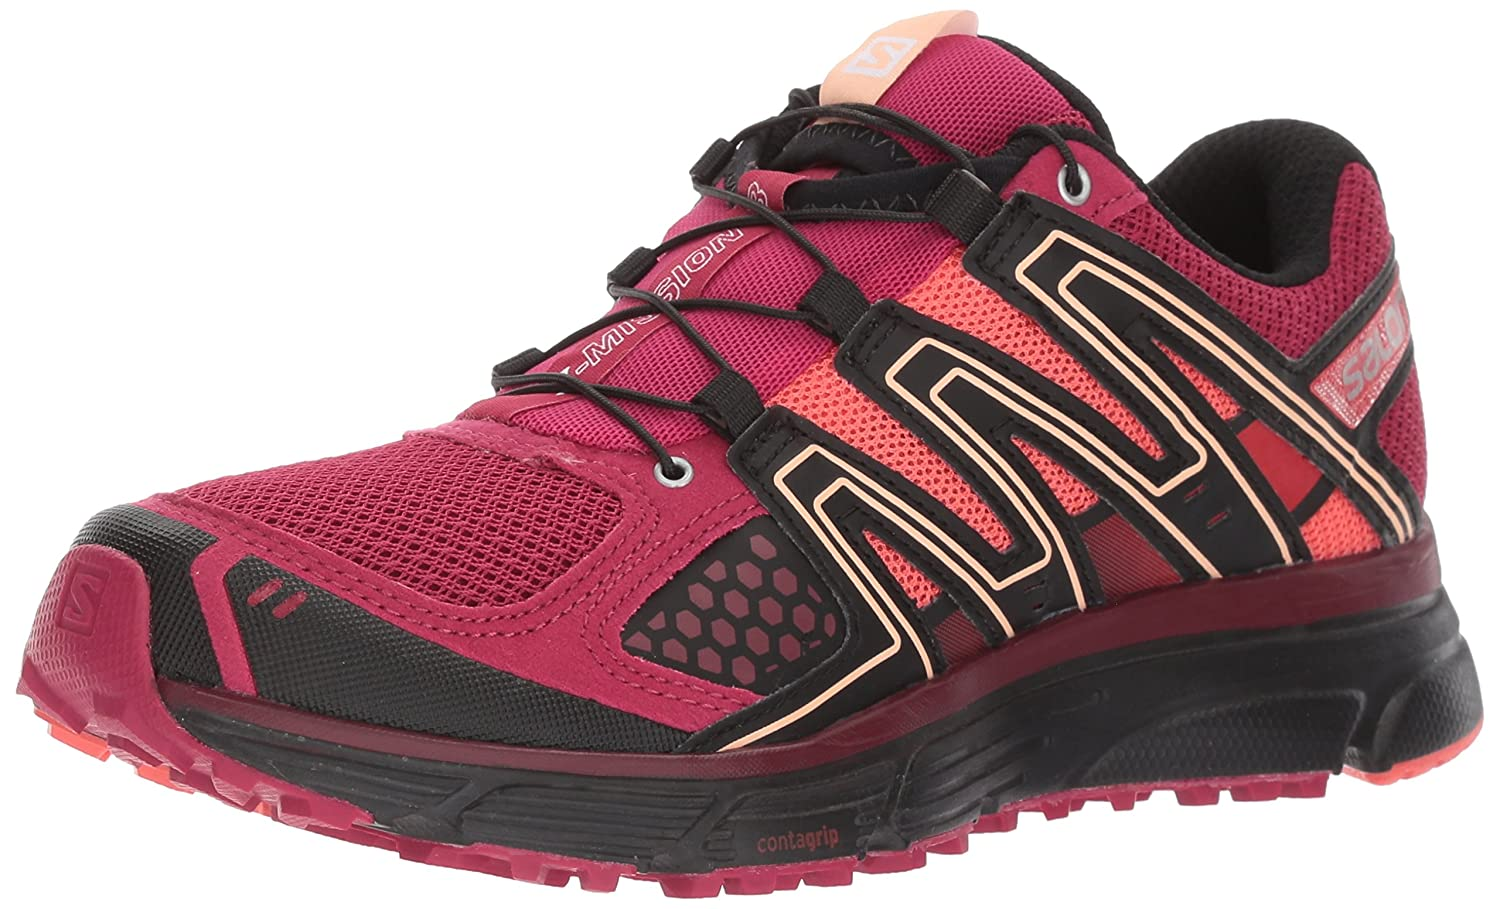 Salomon Women's X-Mission 3 W-w B01N1J0UMA 6 B(M) US|Sangria/Coral Punch/Black